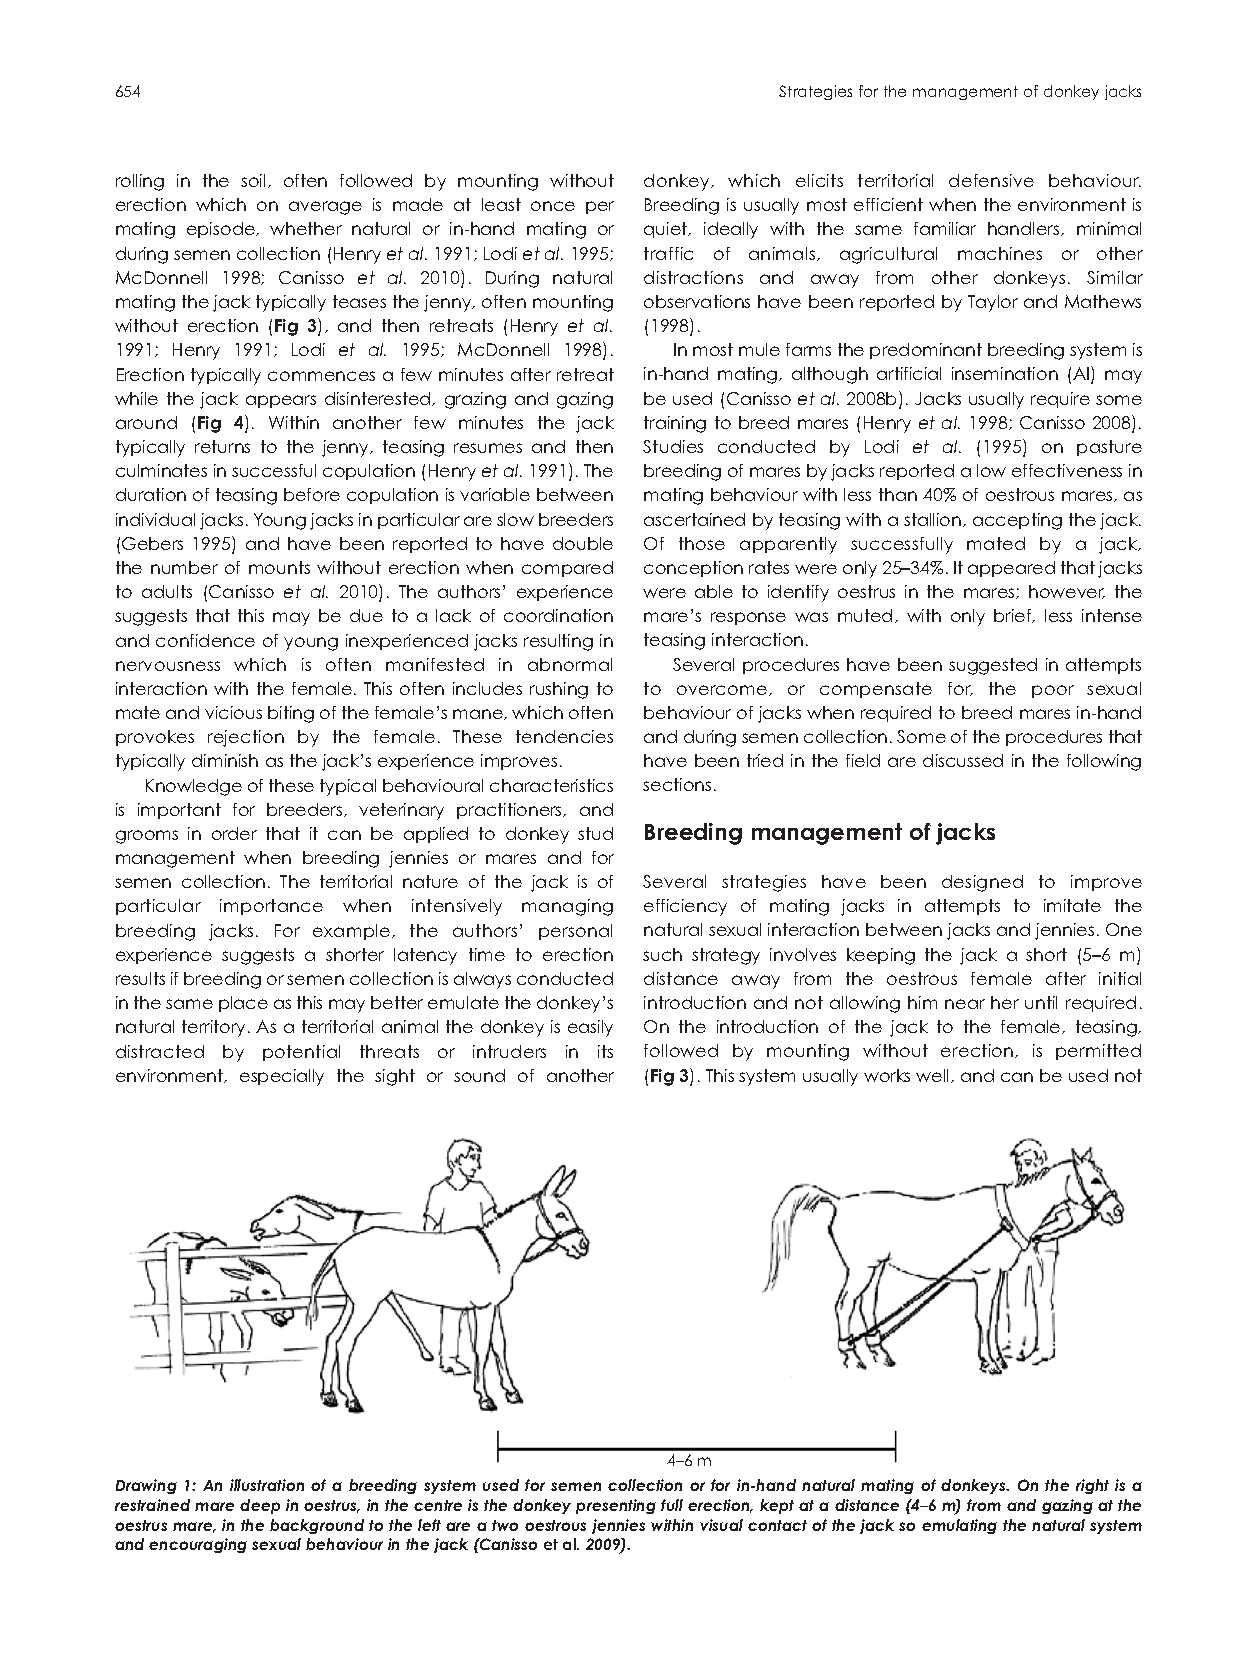 095777309X479058_Page_3.png